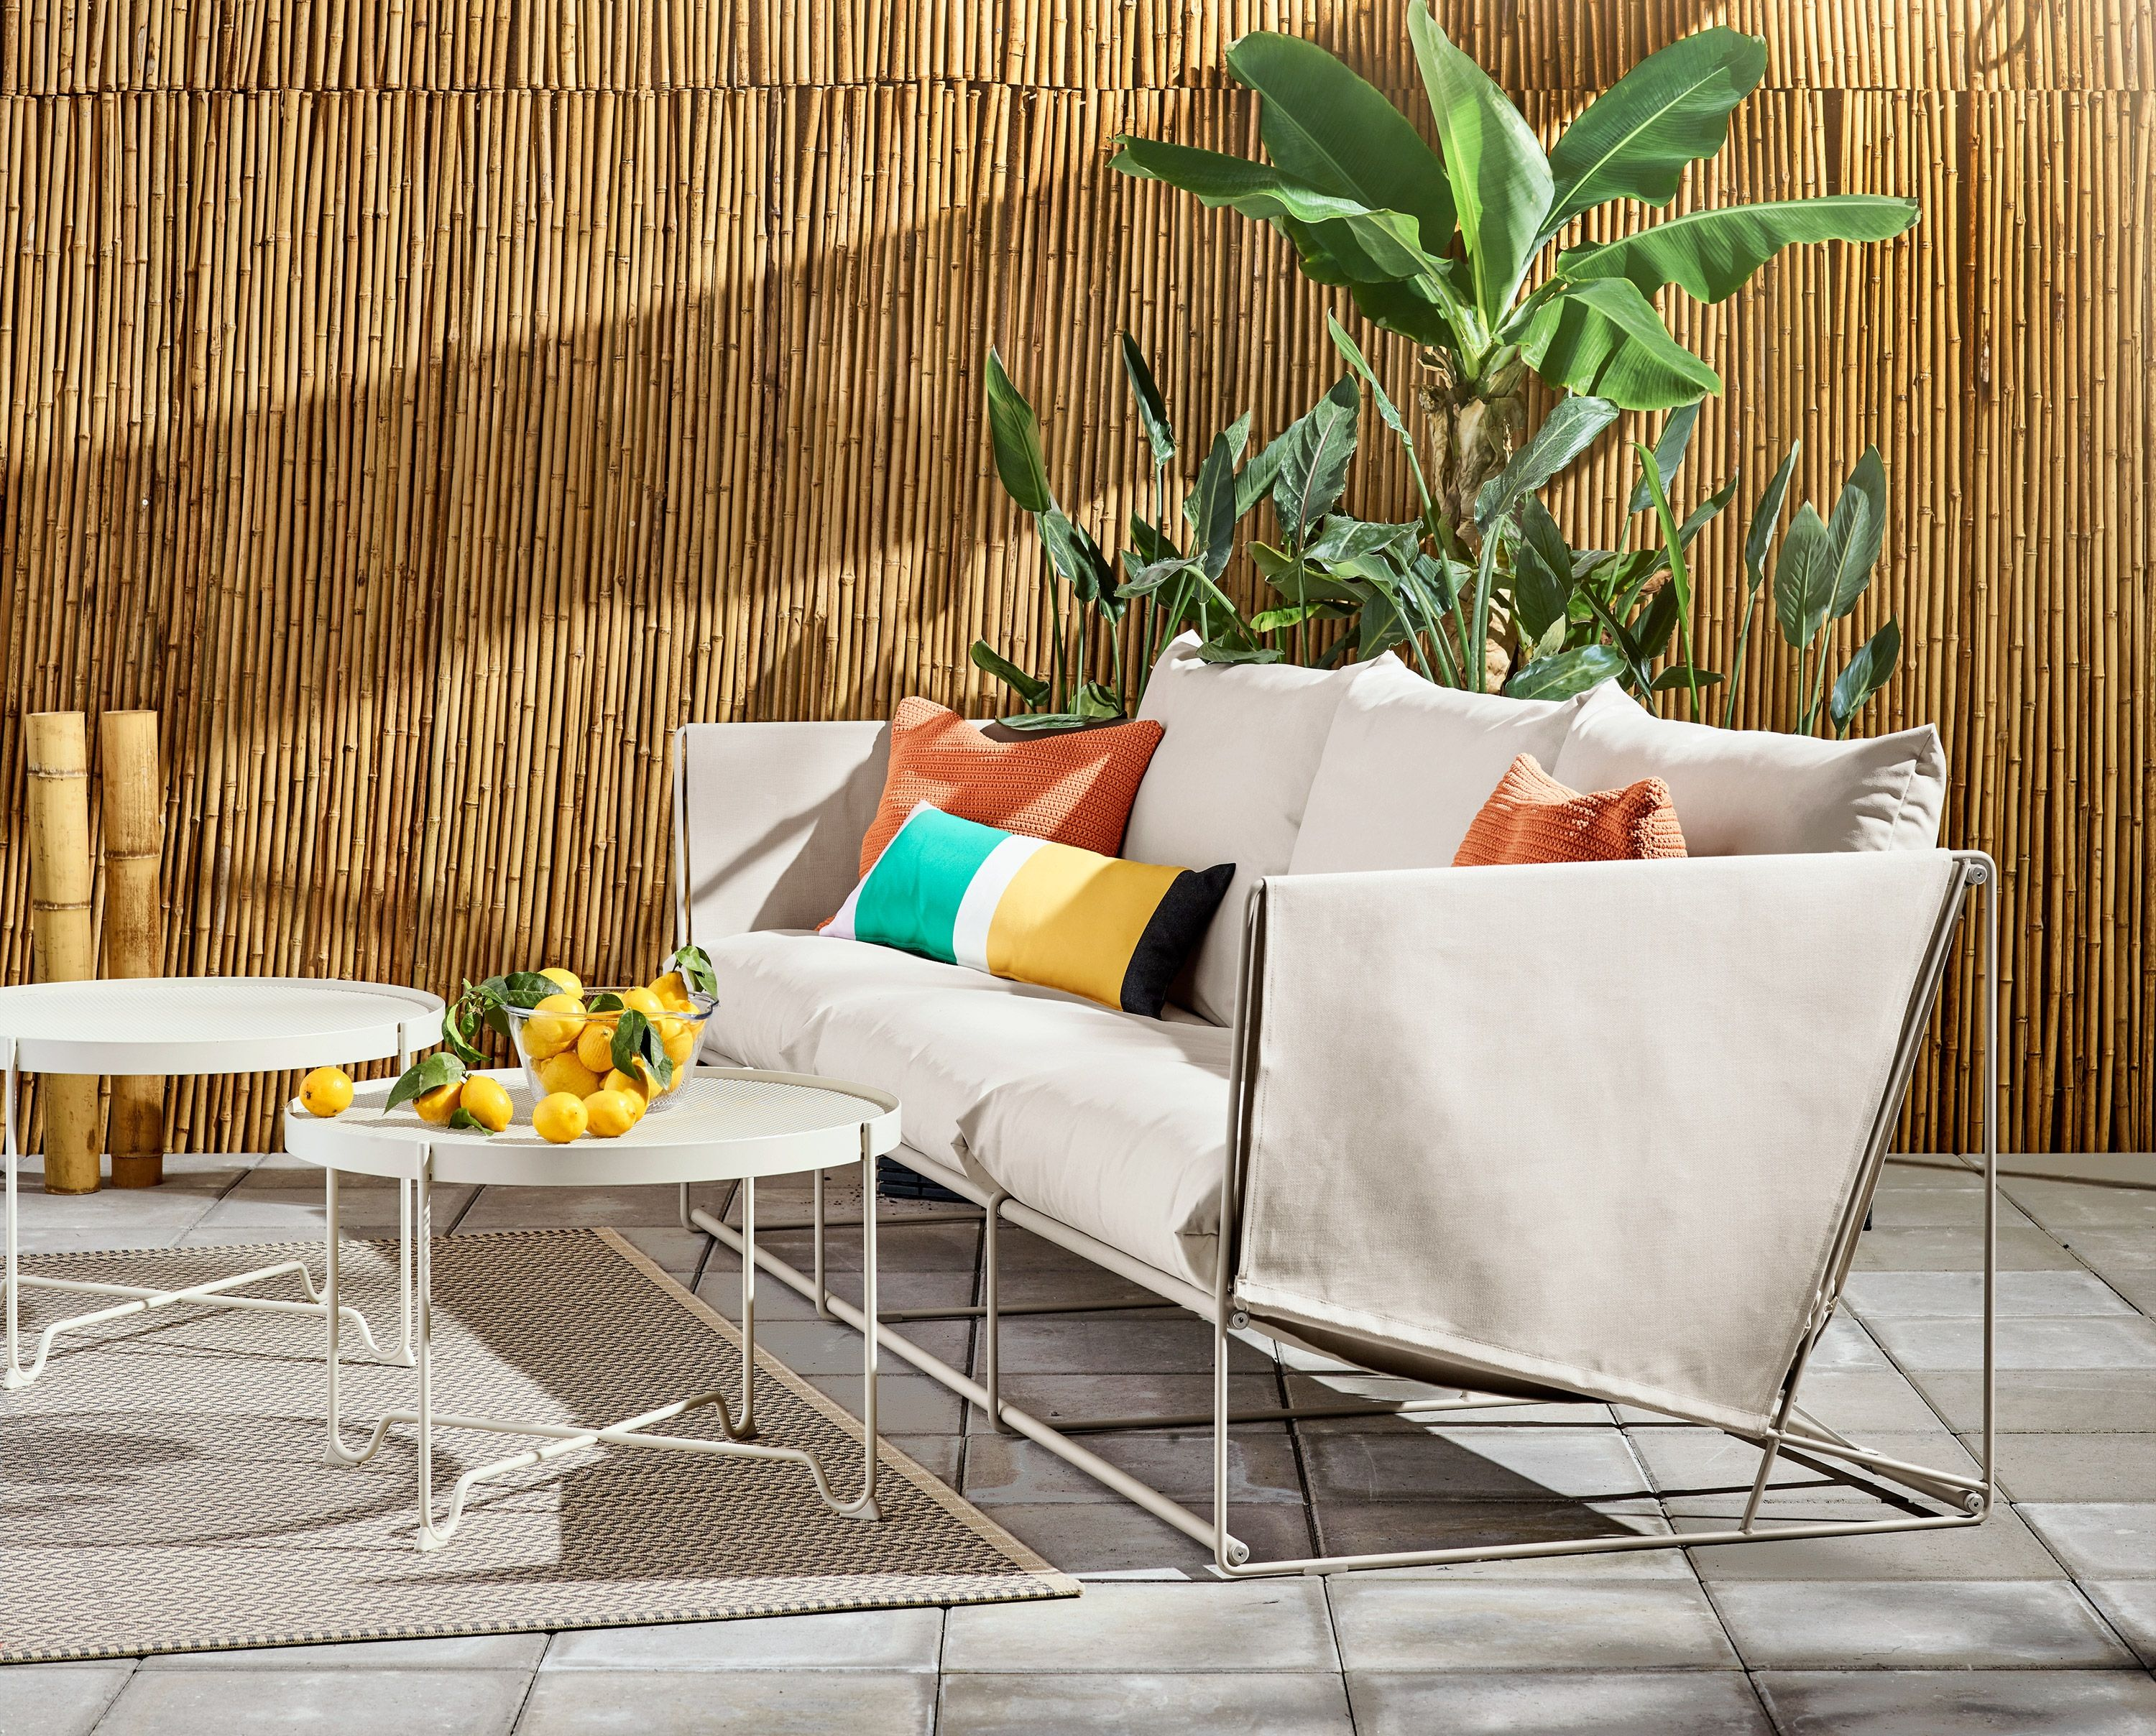 Top 20 Best New Home Products Best Outdoor Furniture Minimalist